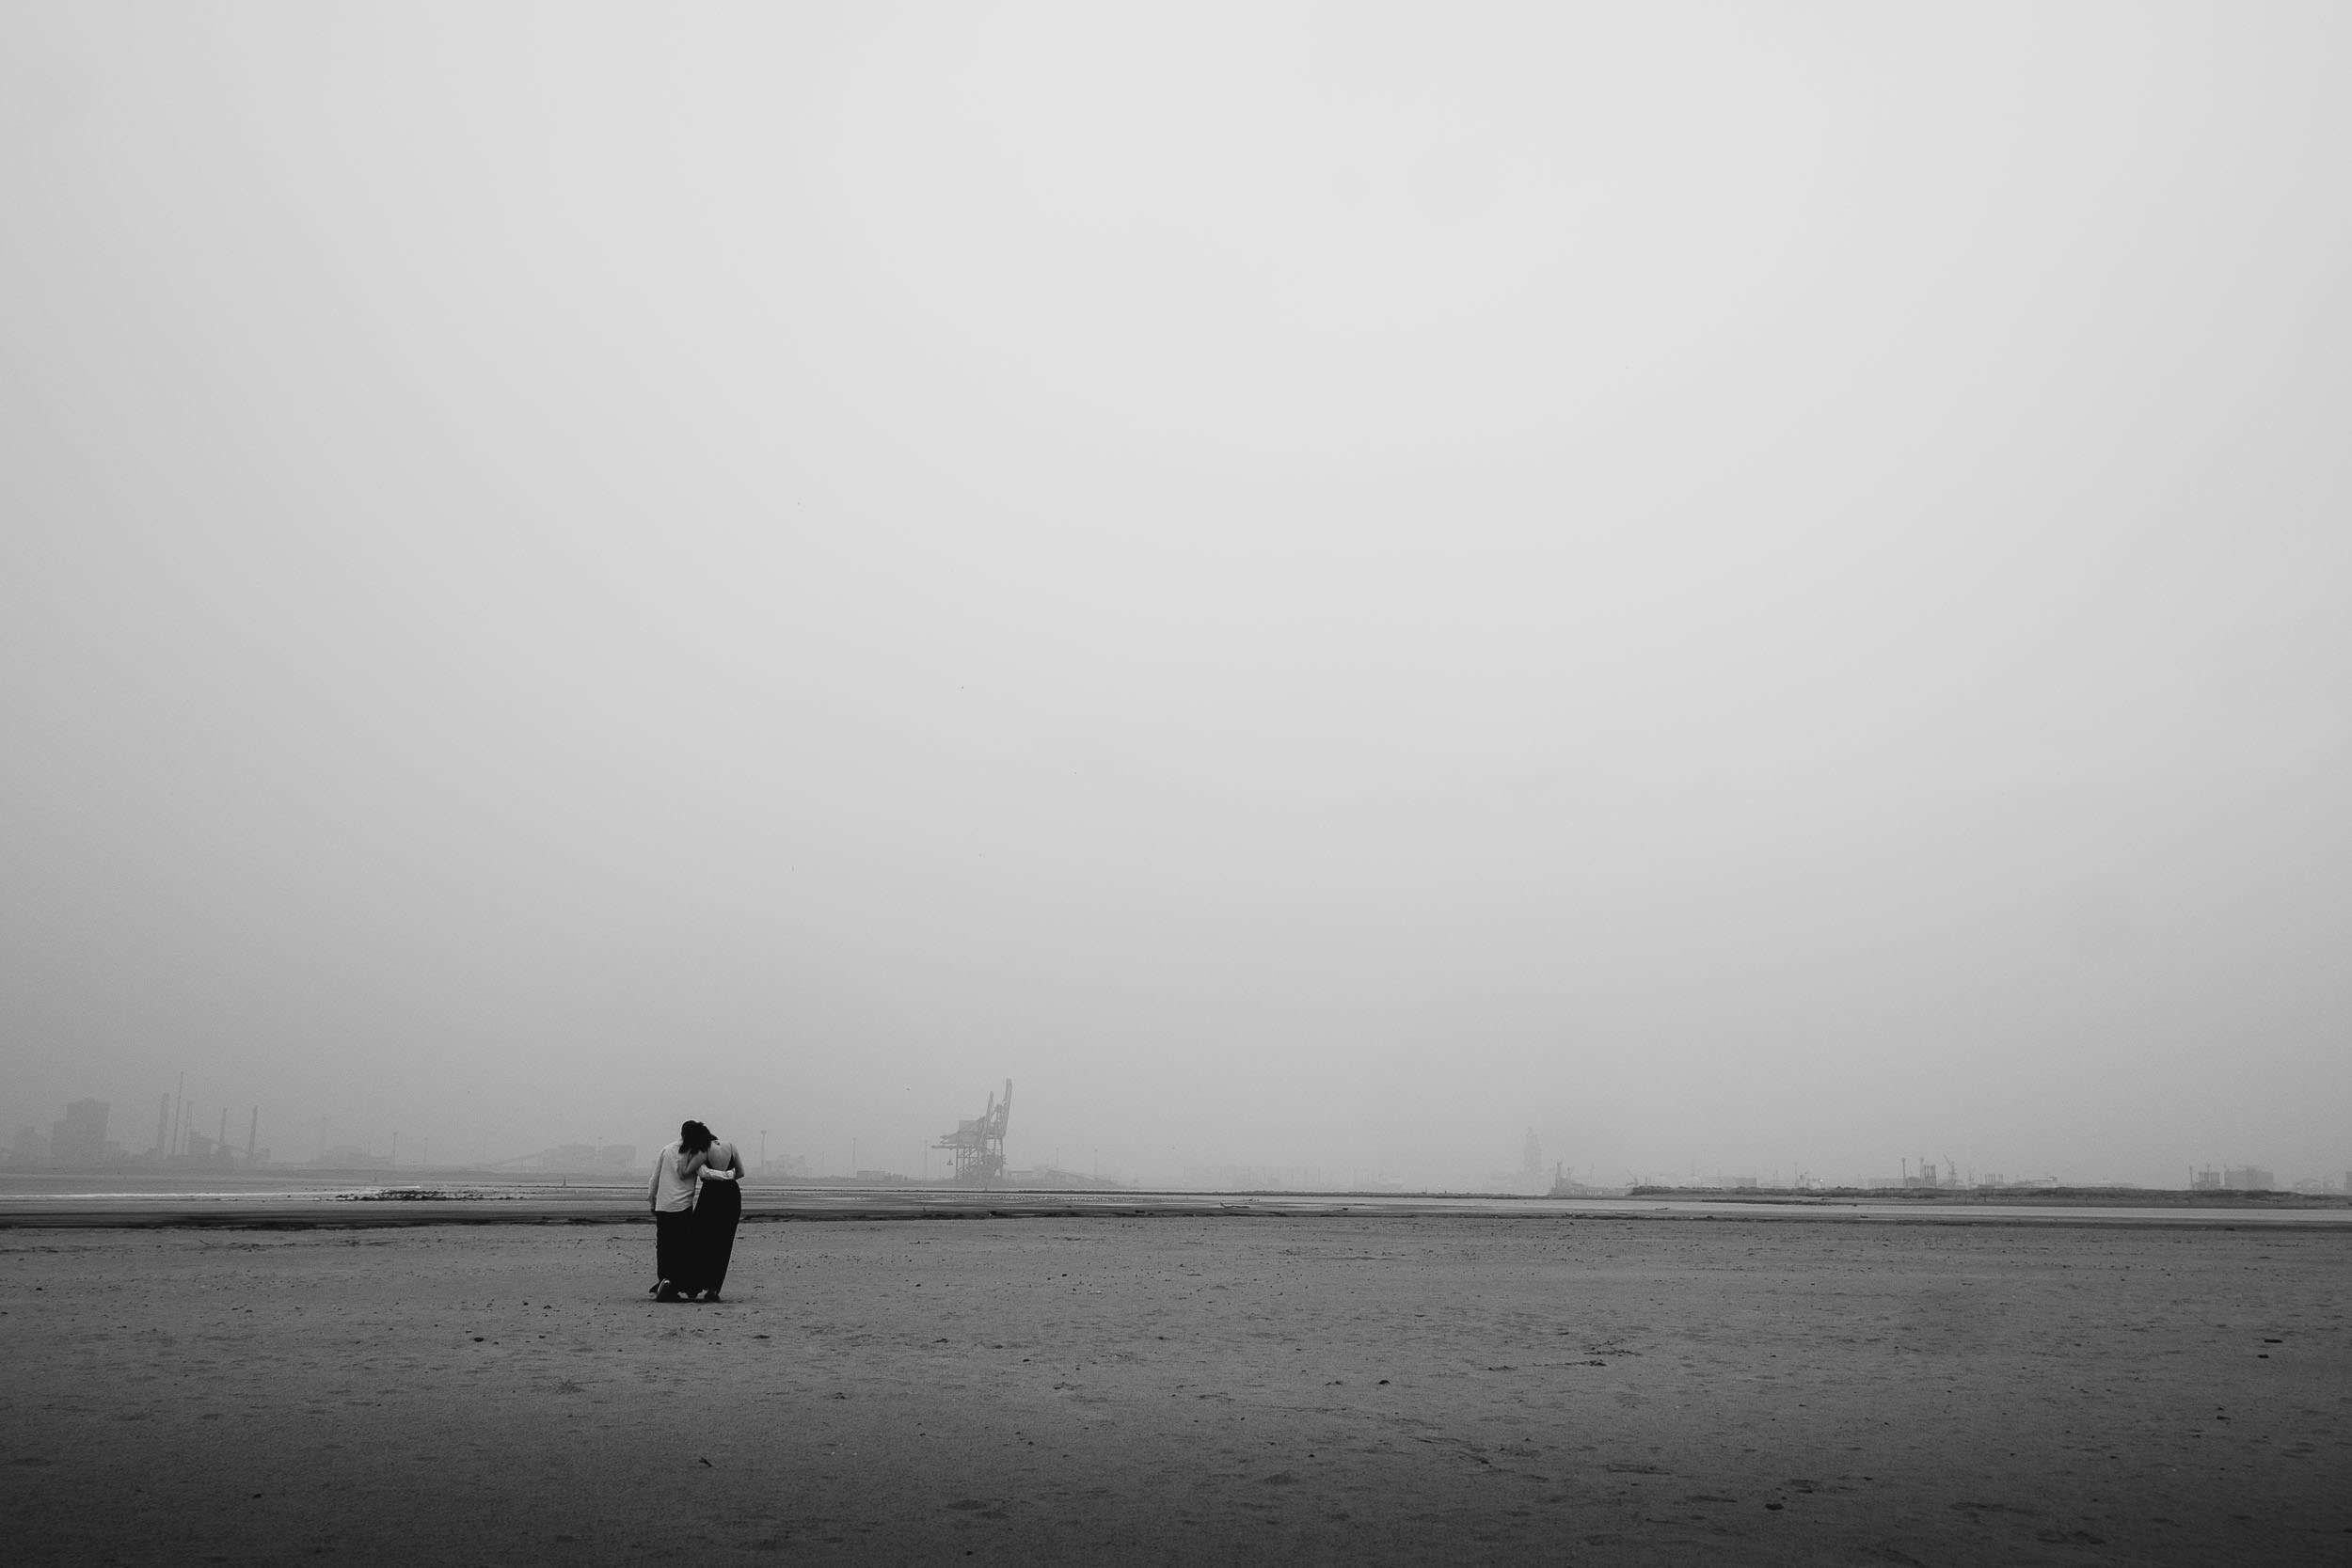 Black and white photo of couple walking on deserted beach arm in arm